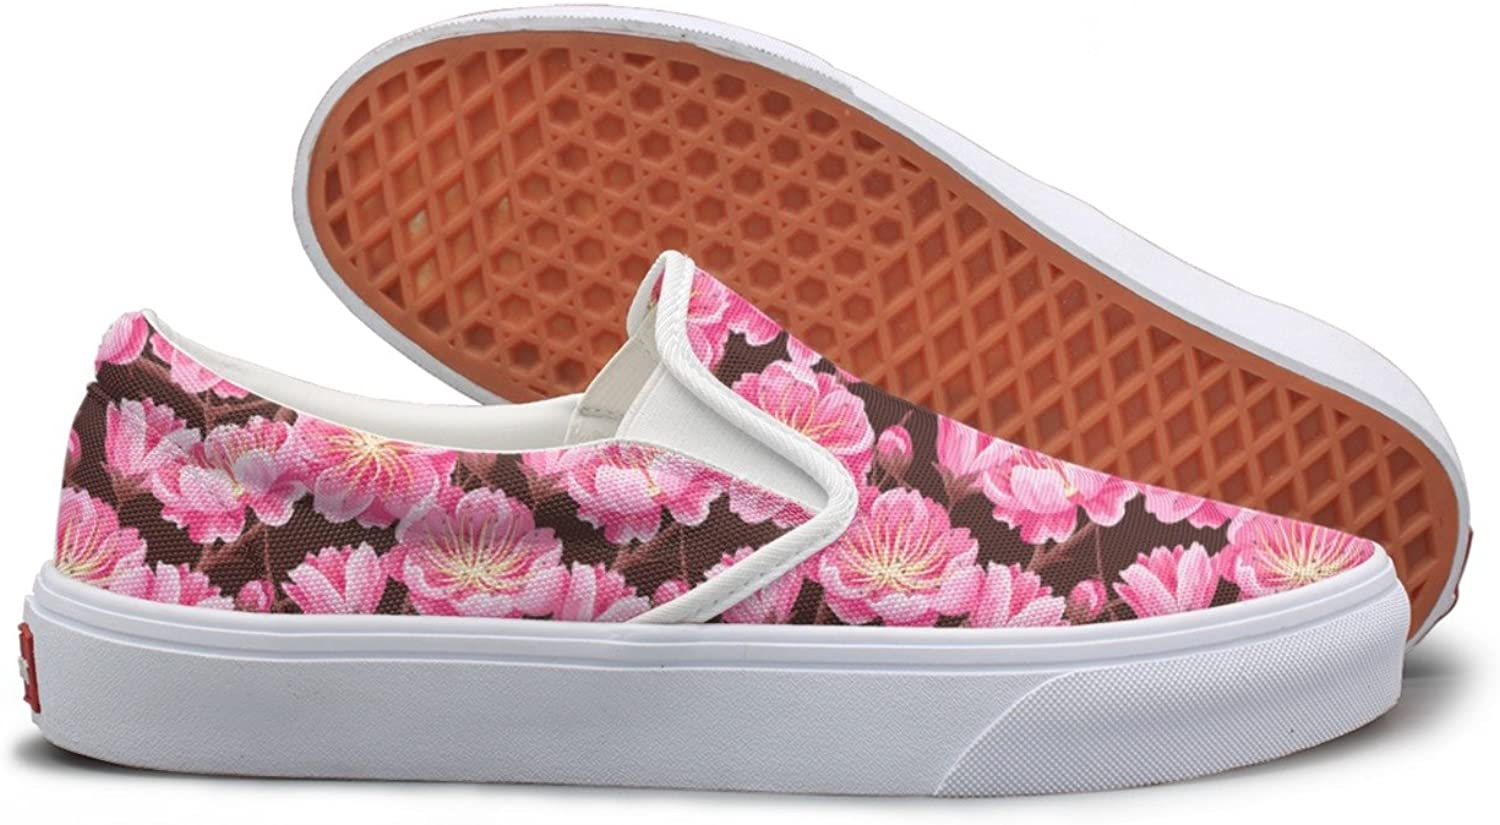 Casual Cherry Blossom Stems Women's Canvas shoes